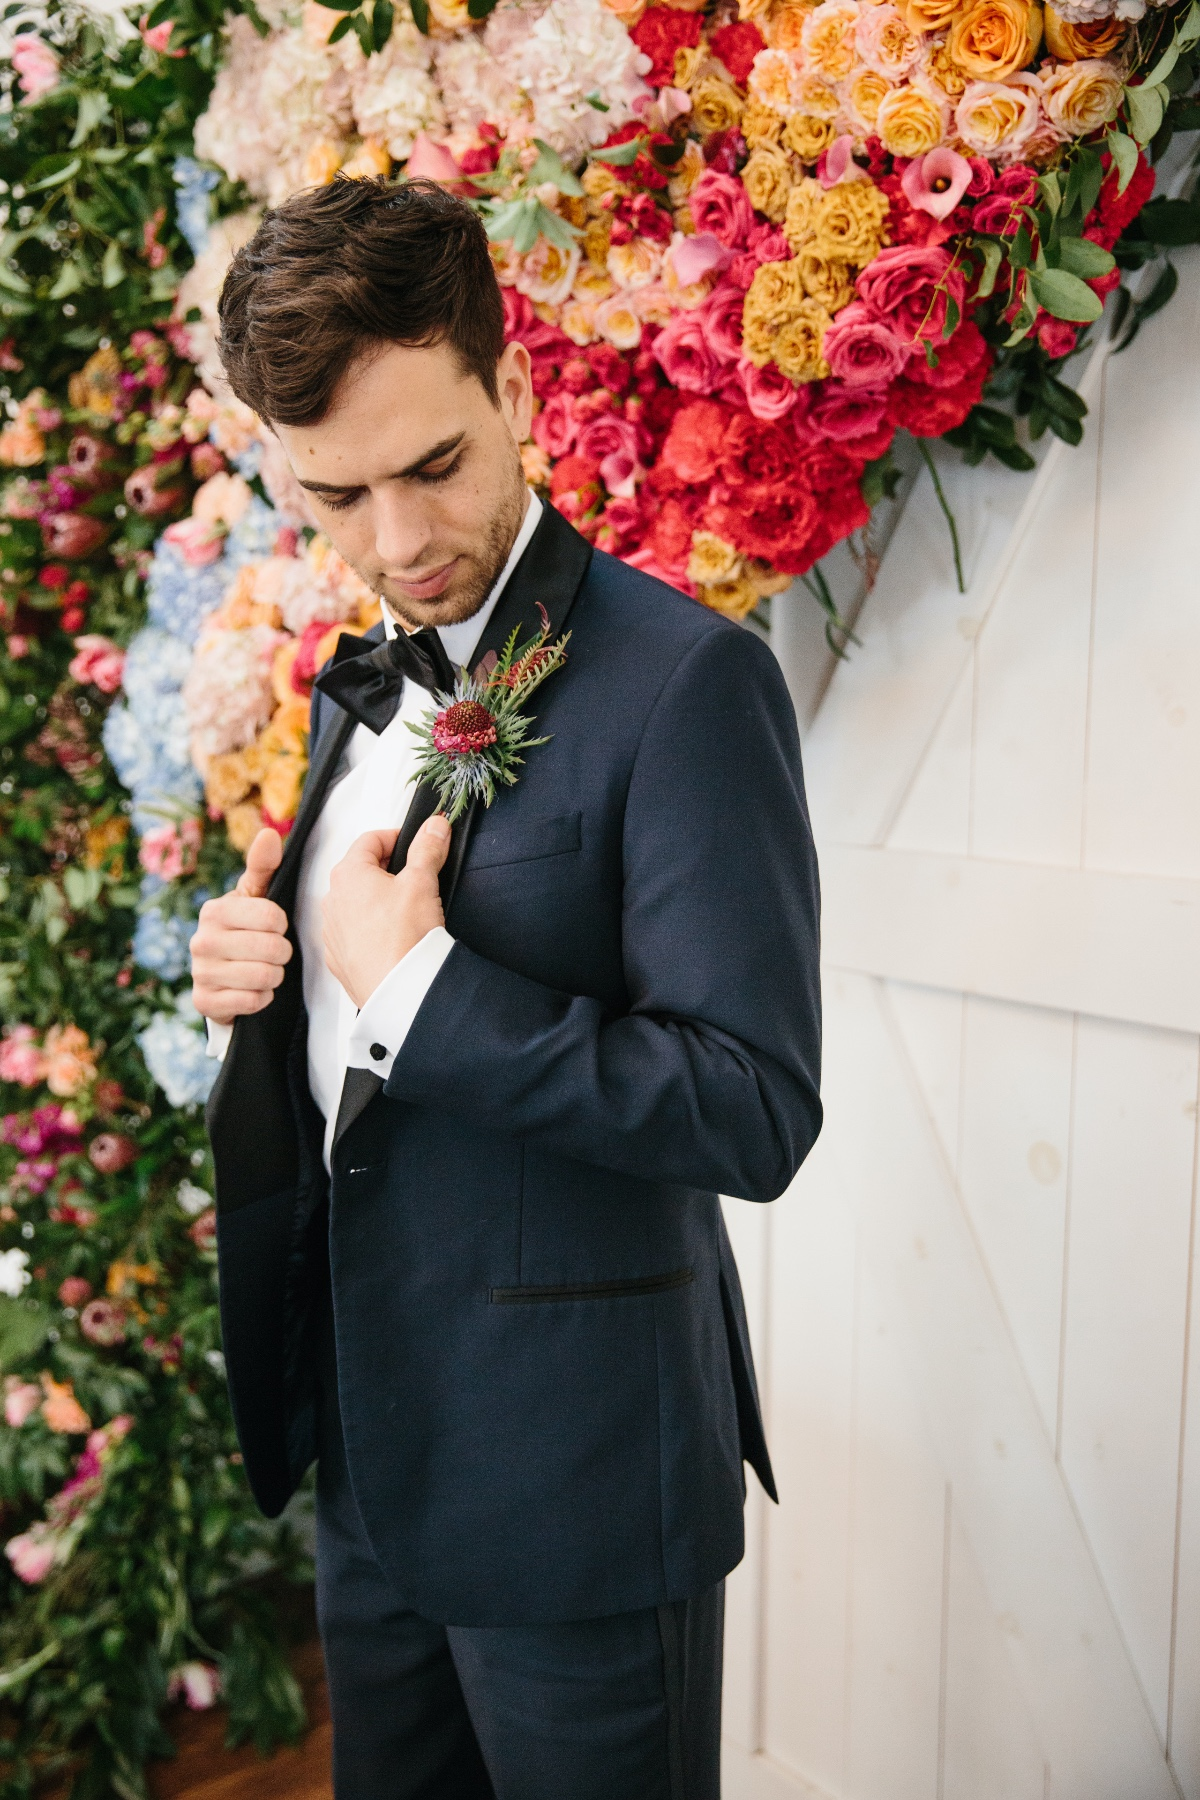 The Black Tux suit rental